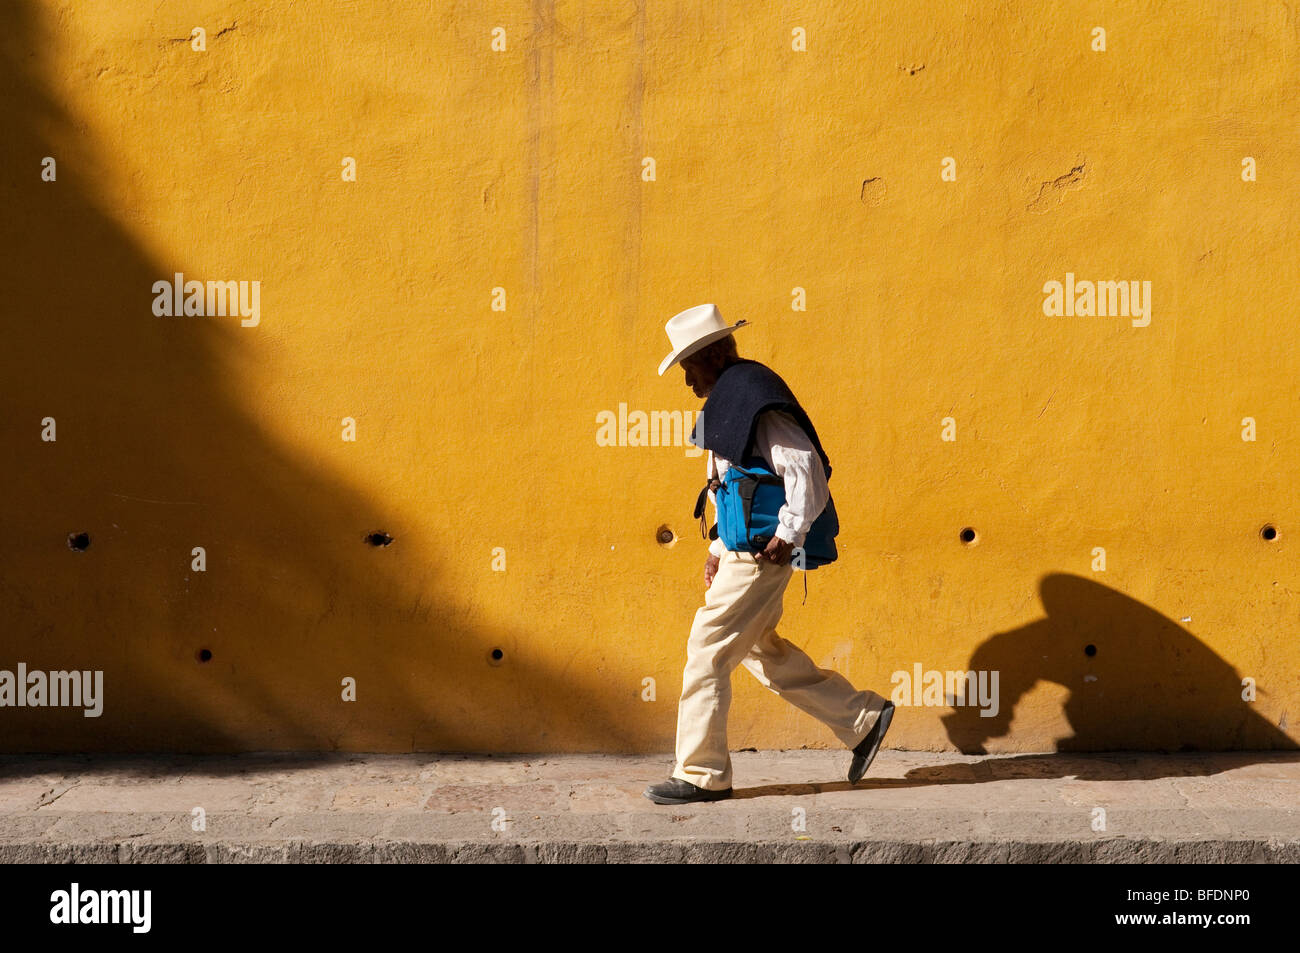 Man walking in front of yellow wall; San Miguel de Allende, Mexico. - Stock Image